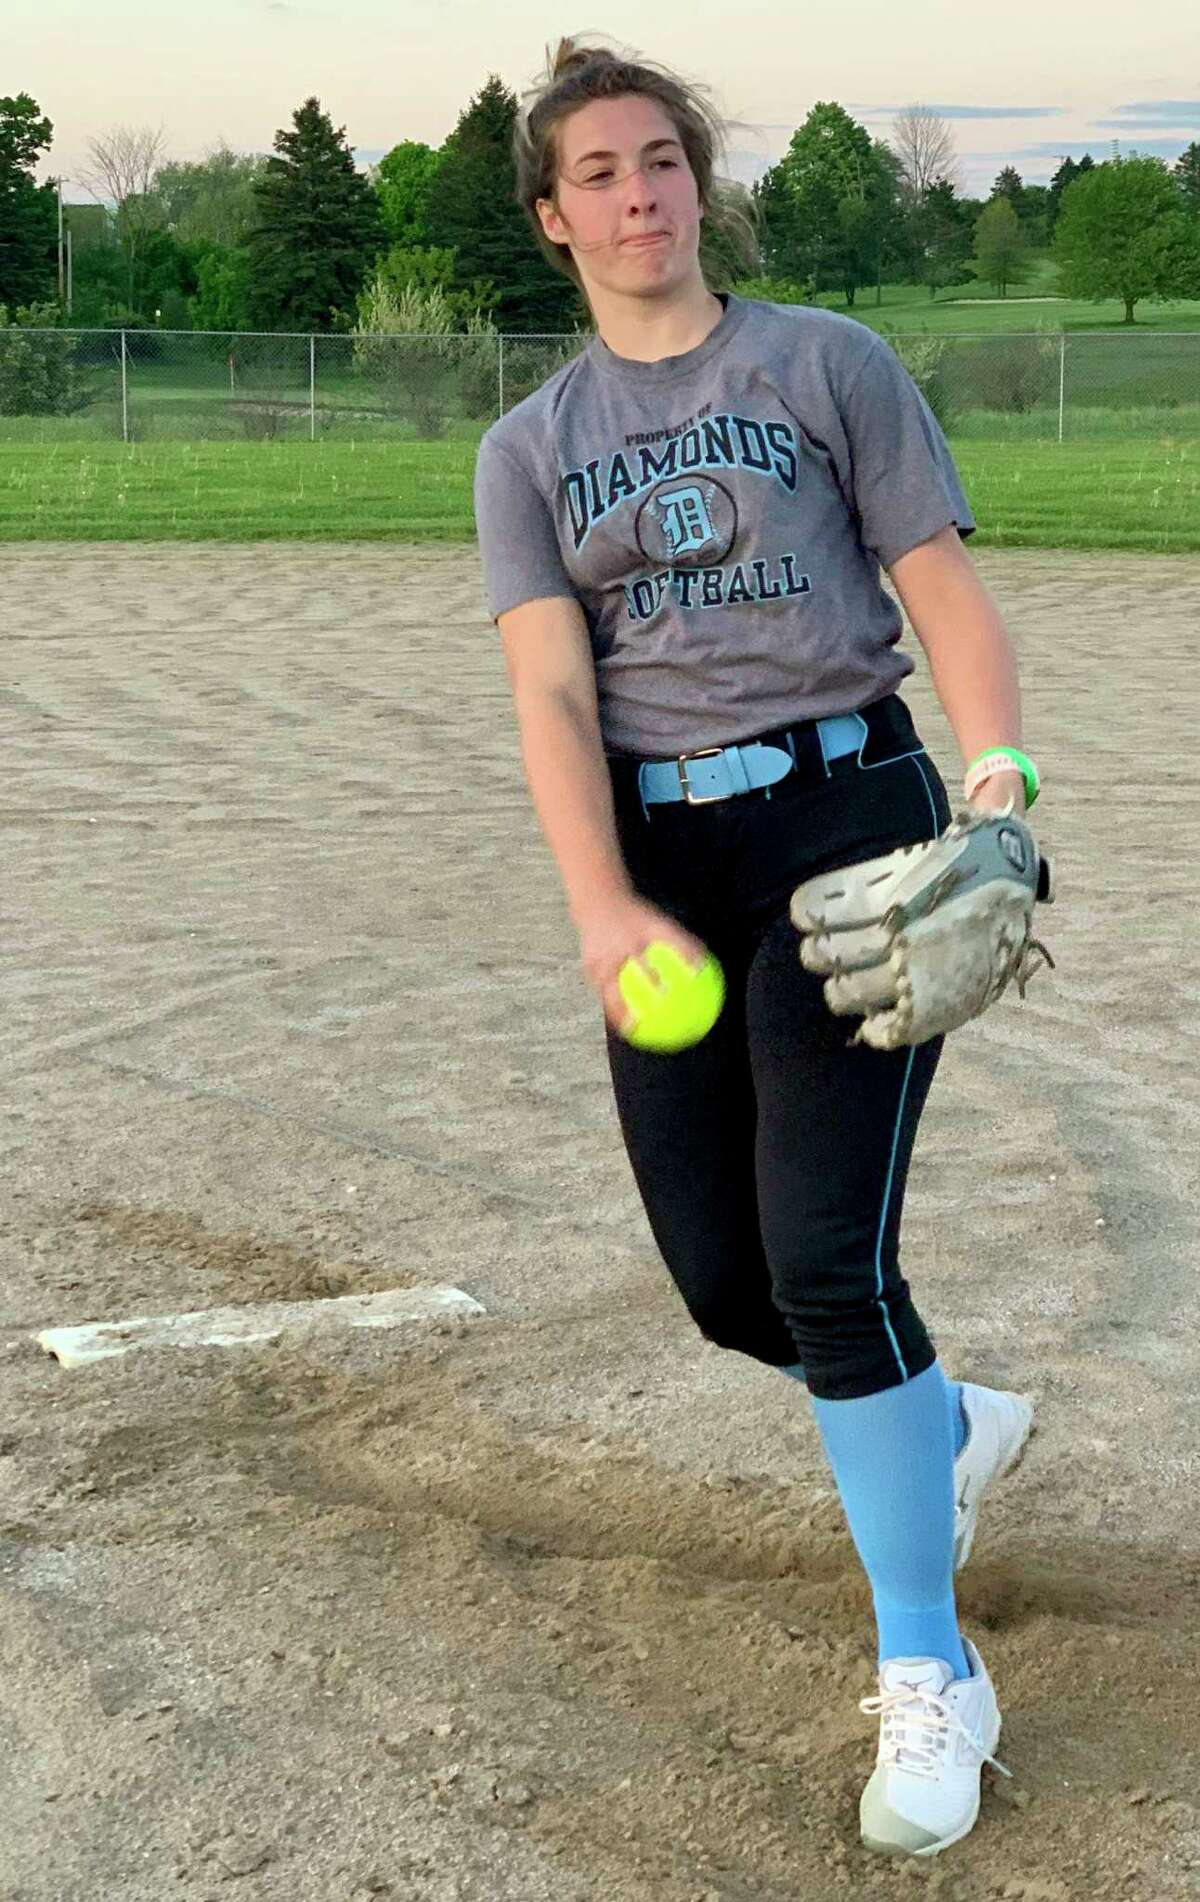 Big Rapids' Rylie Haist throws a pitch for the Diamonds traveling softball team during a practice. (Courtesy photo)